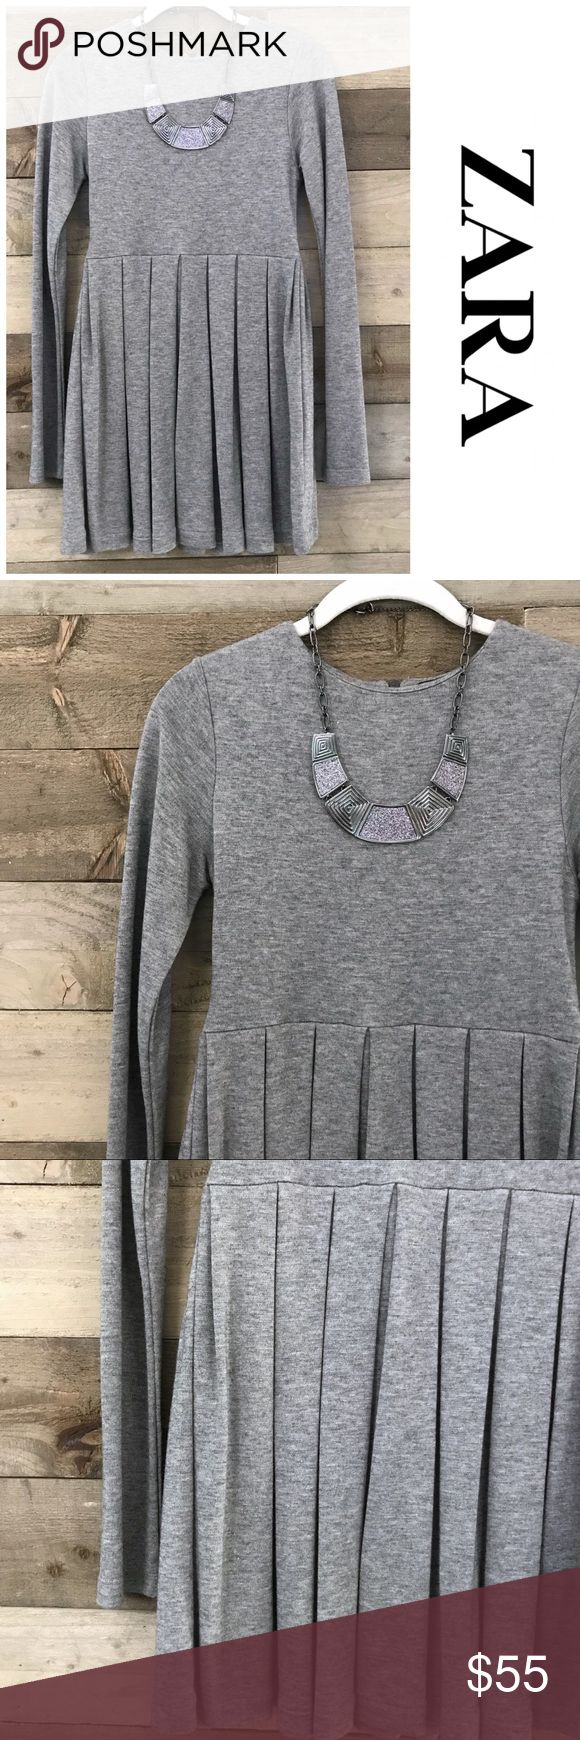 Zara Woman Gray Long Sleeve Pleated Dress Zara Woman Gray Long Sleeve Pleated Dress. You can dress this up with colorful accessories and heels, or play it cool with minimal accessories and black heels. Necklace pictured is not included but is available for sale. Zara Dresses